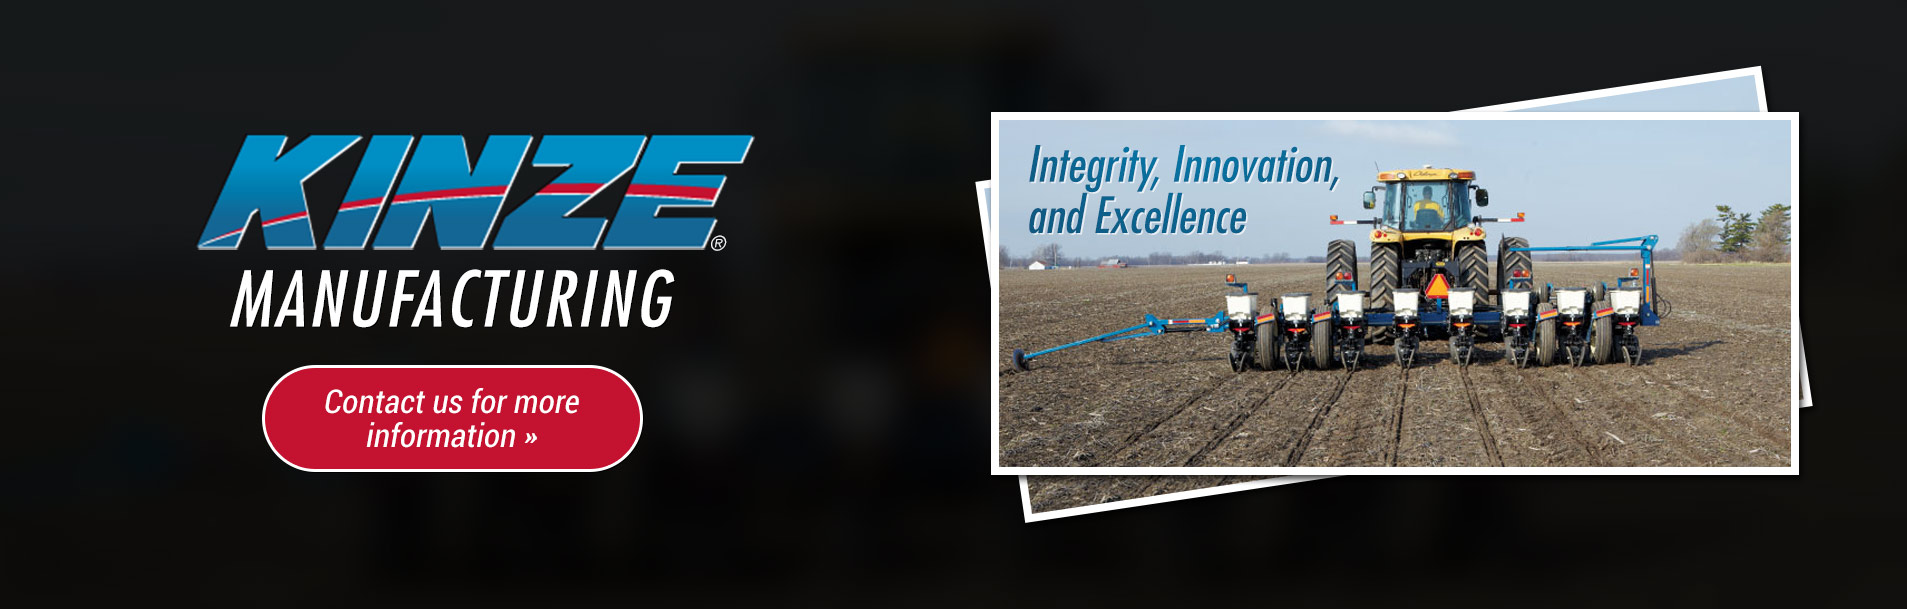 Kinze Manufacturing: Contact us for more information.